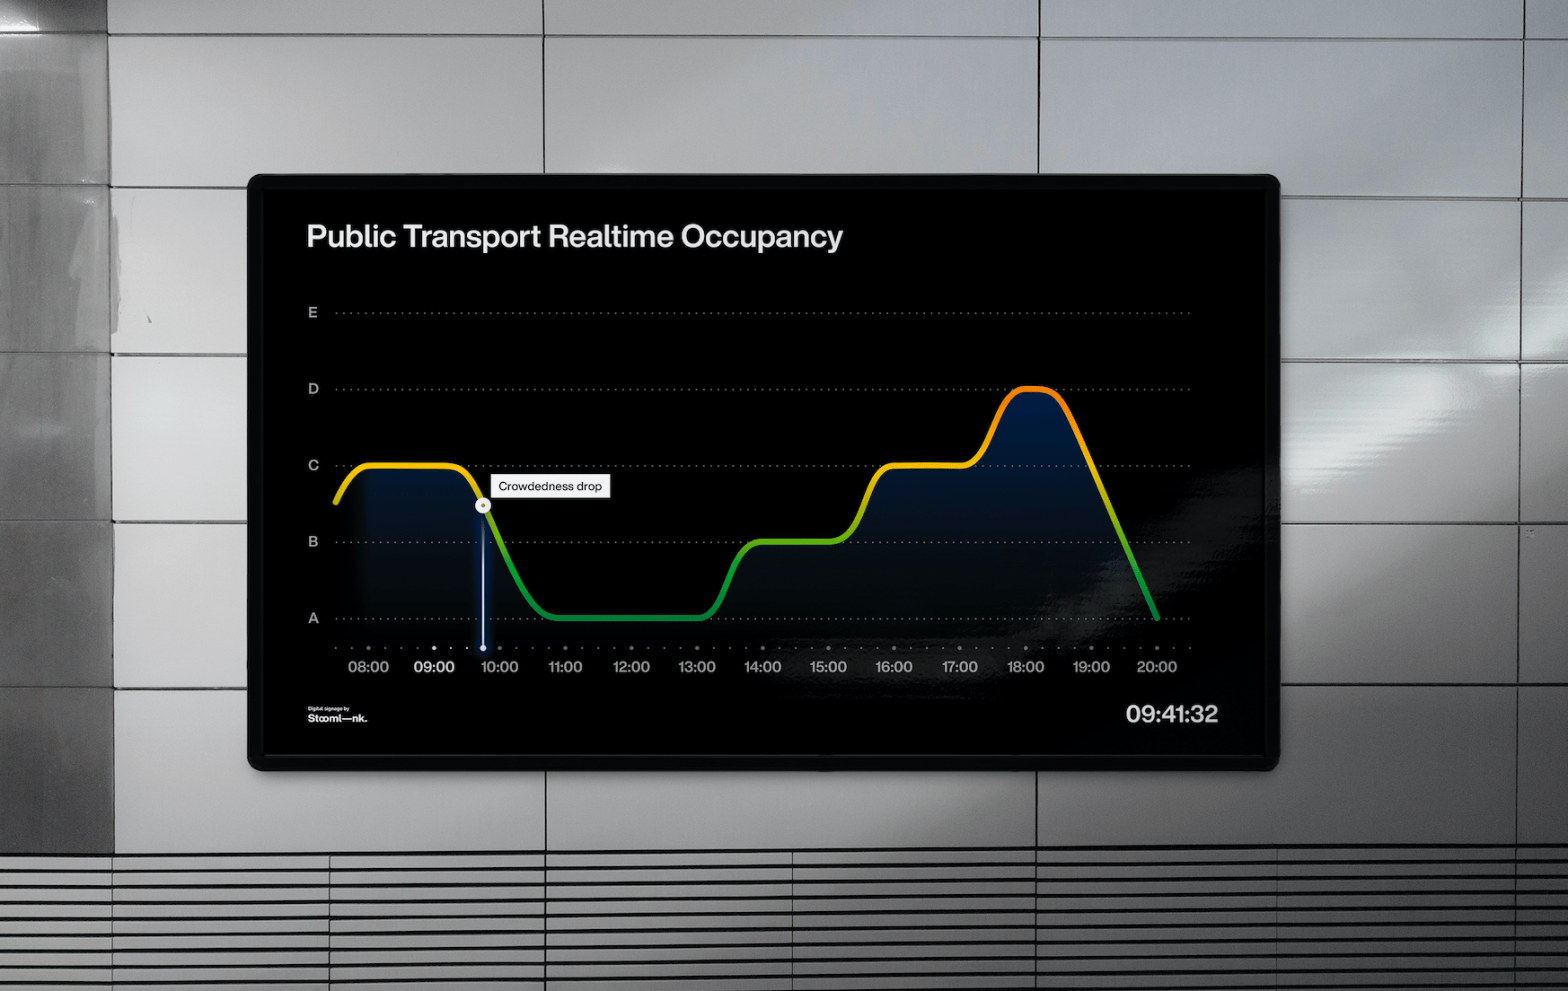 A screen of the public transport realtime occupancy